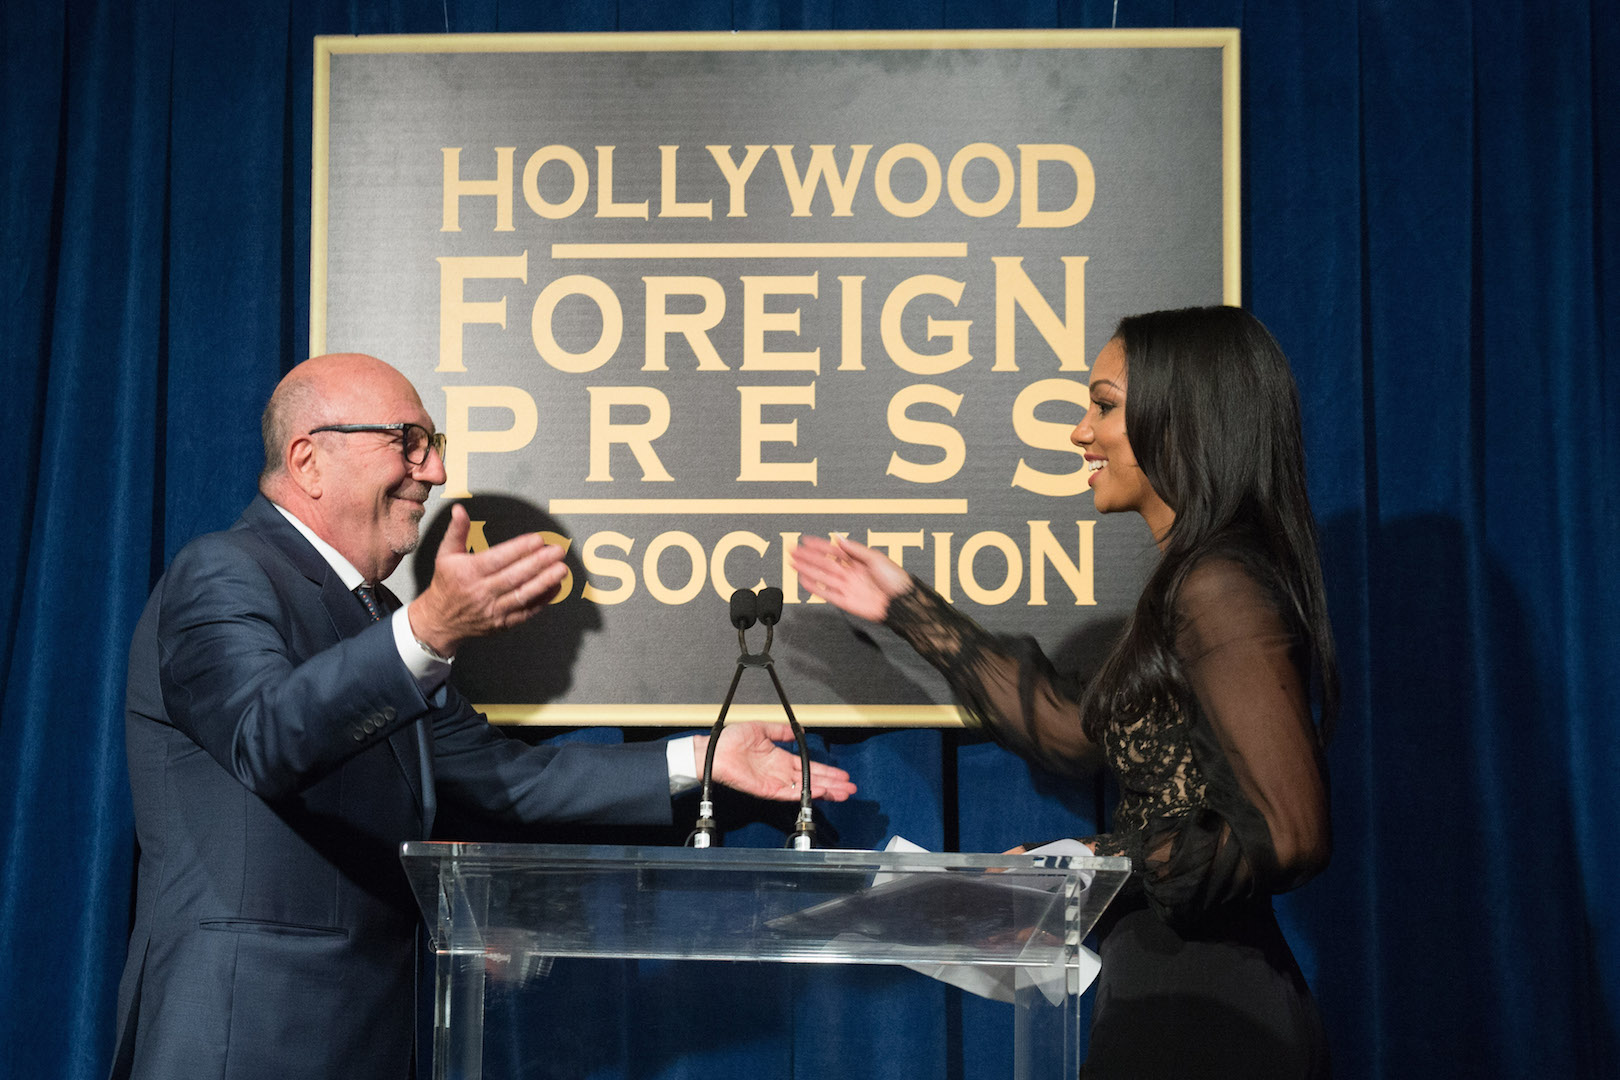 The Hollywood Foreign Press Association has selected Corinne Foxx as Miss Golden Globe 2016 for the 73rd Annual Golden Globe Awards set to air live on NBC on January 10, 2016.President Lorenzo Soria made the announcement on November 17, 2015 from Ysabel Restaurant in West Hollywood.